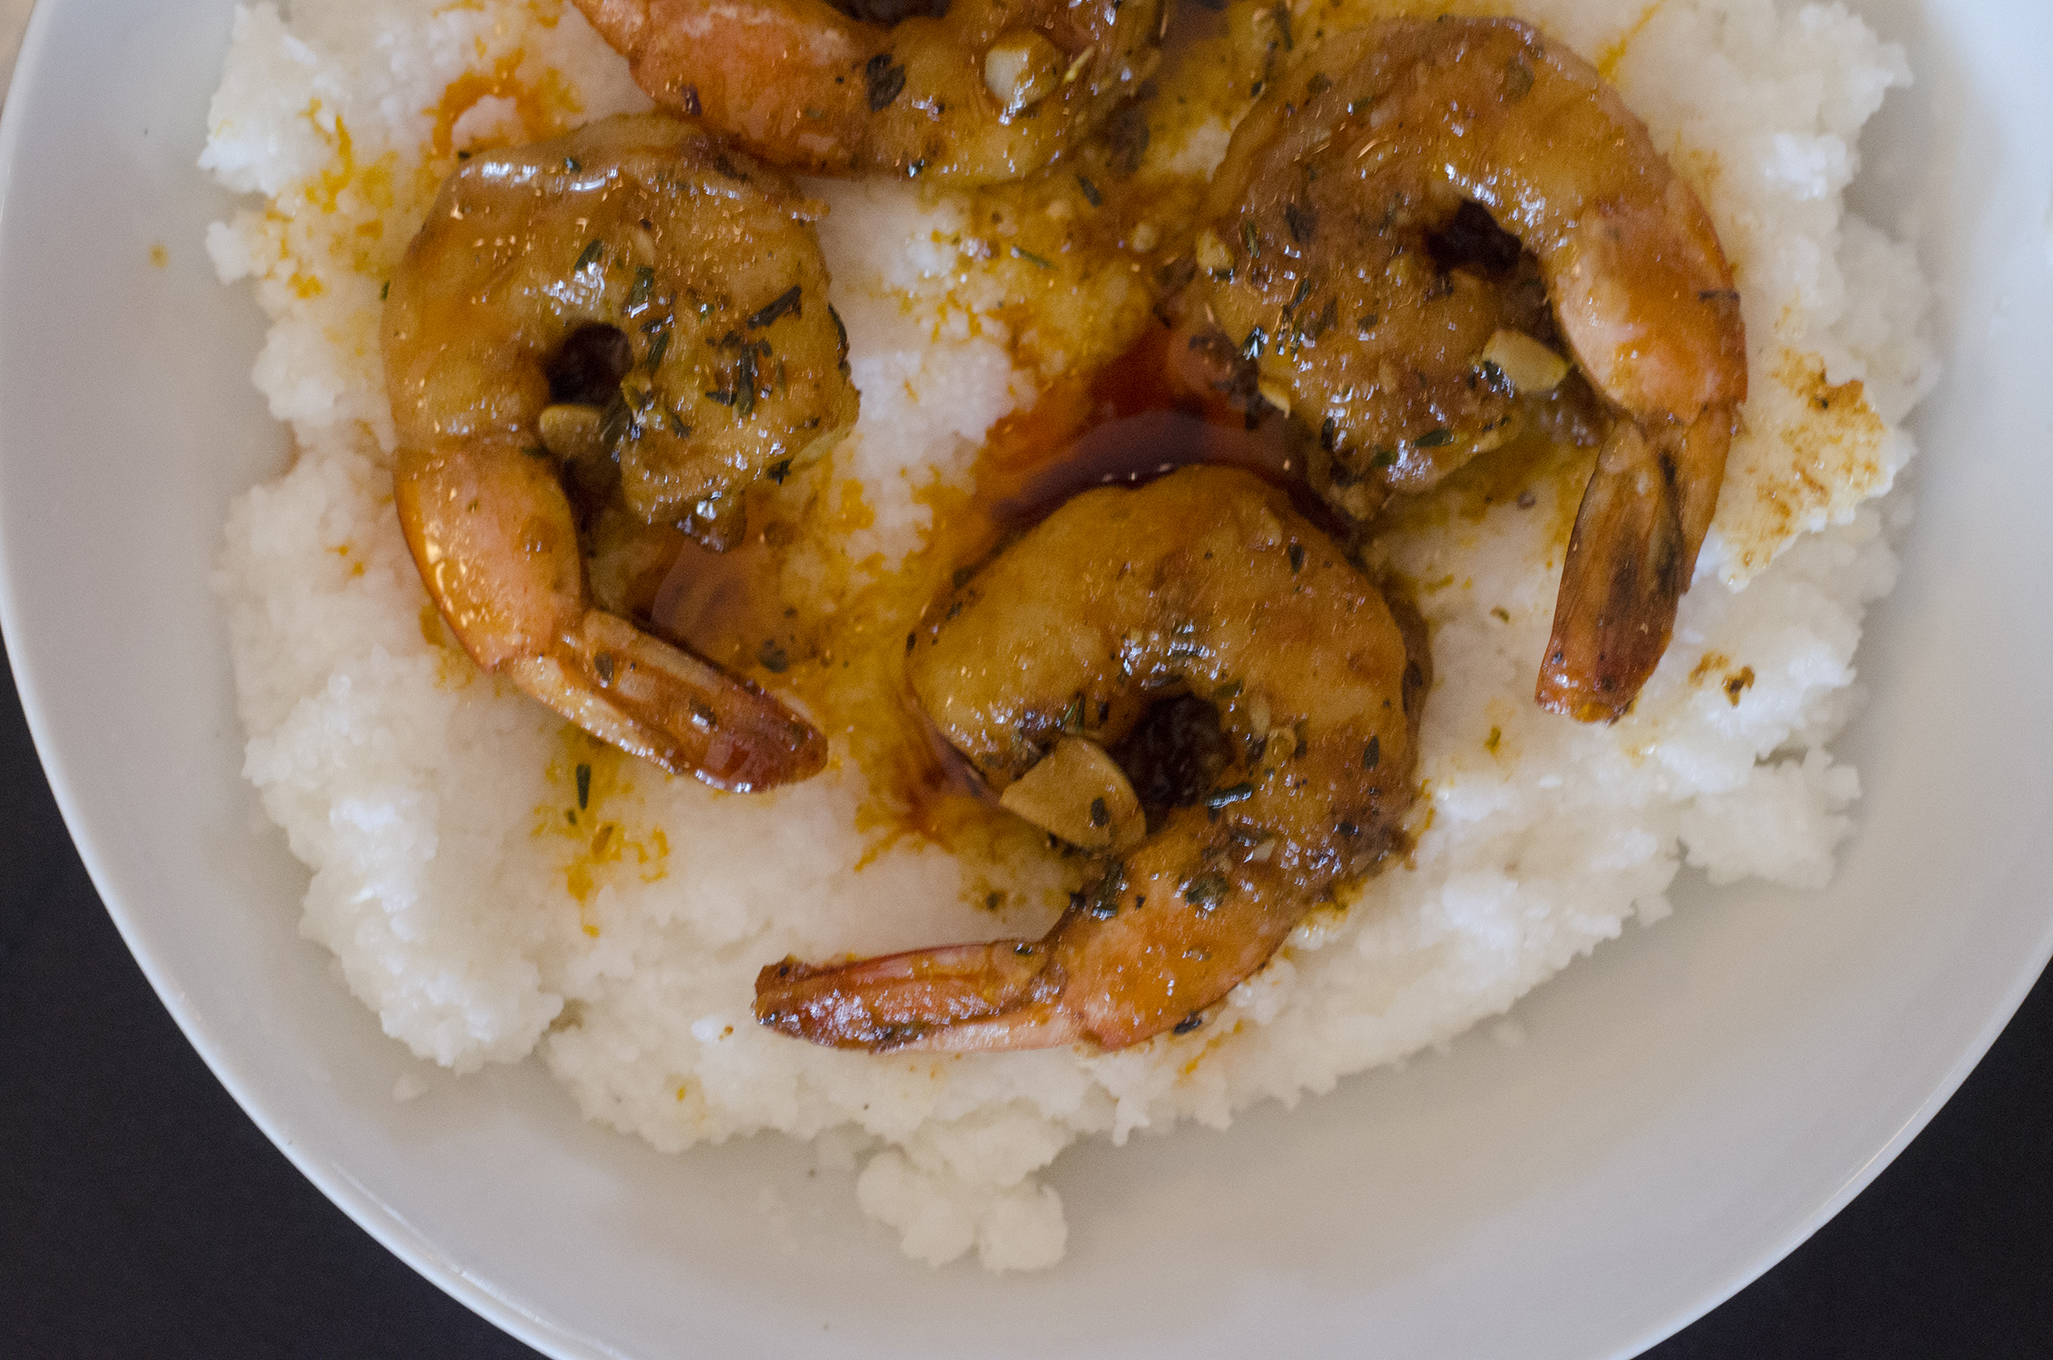 BBQ Shrimp & Grits from Nola's in Windsor, Ontario.